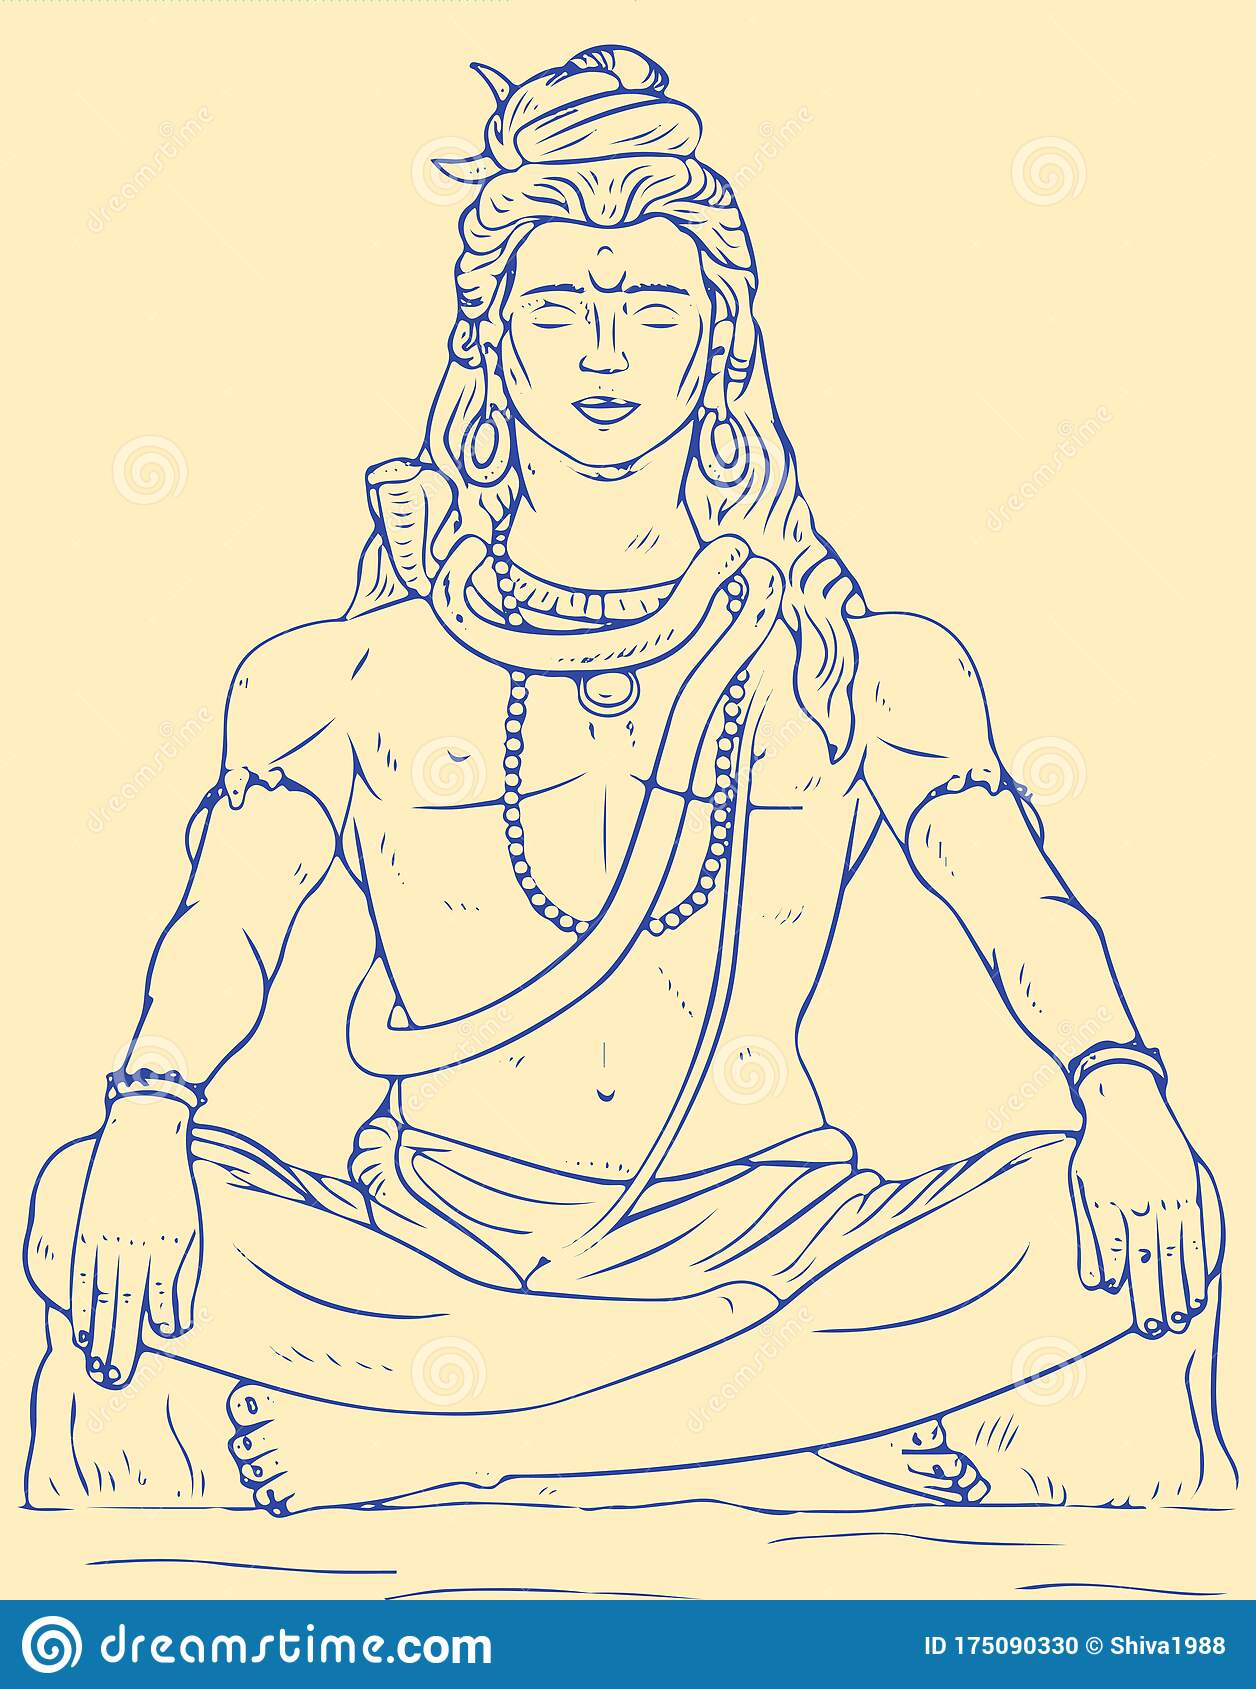 Drawing Of Lord Shiva Sit And Doing Meditation Stock Vector